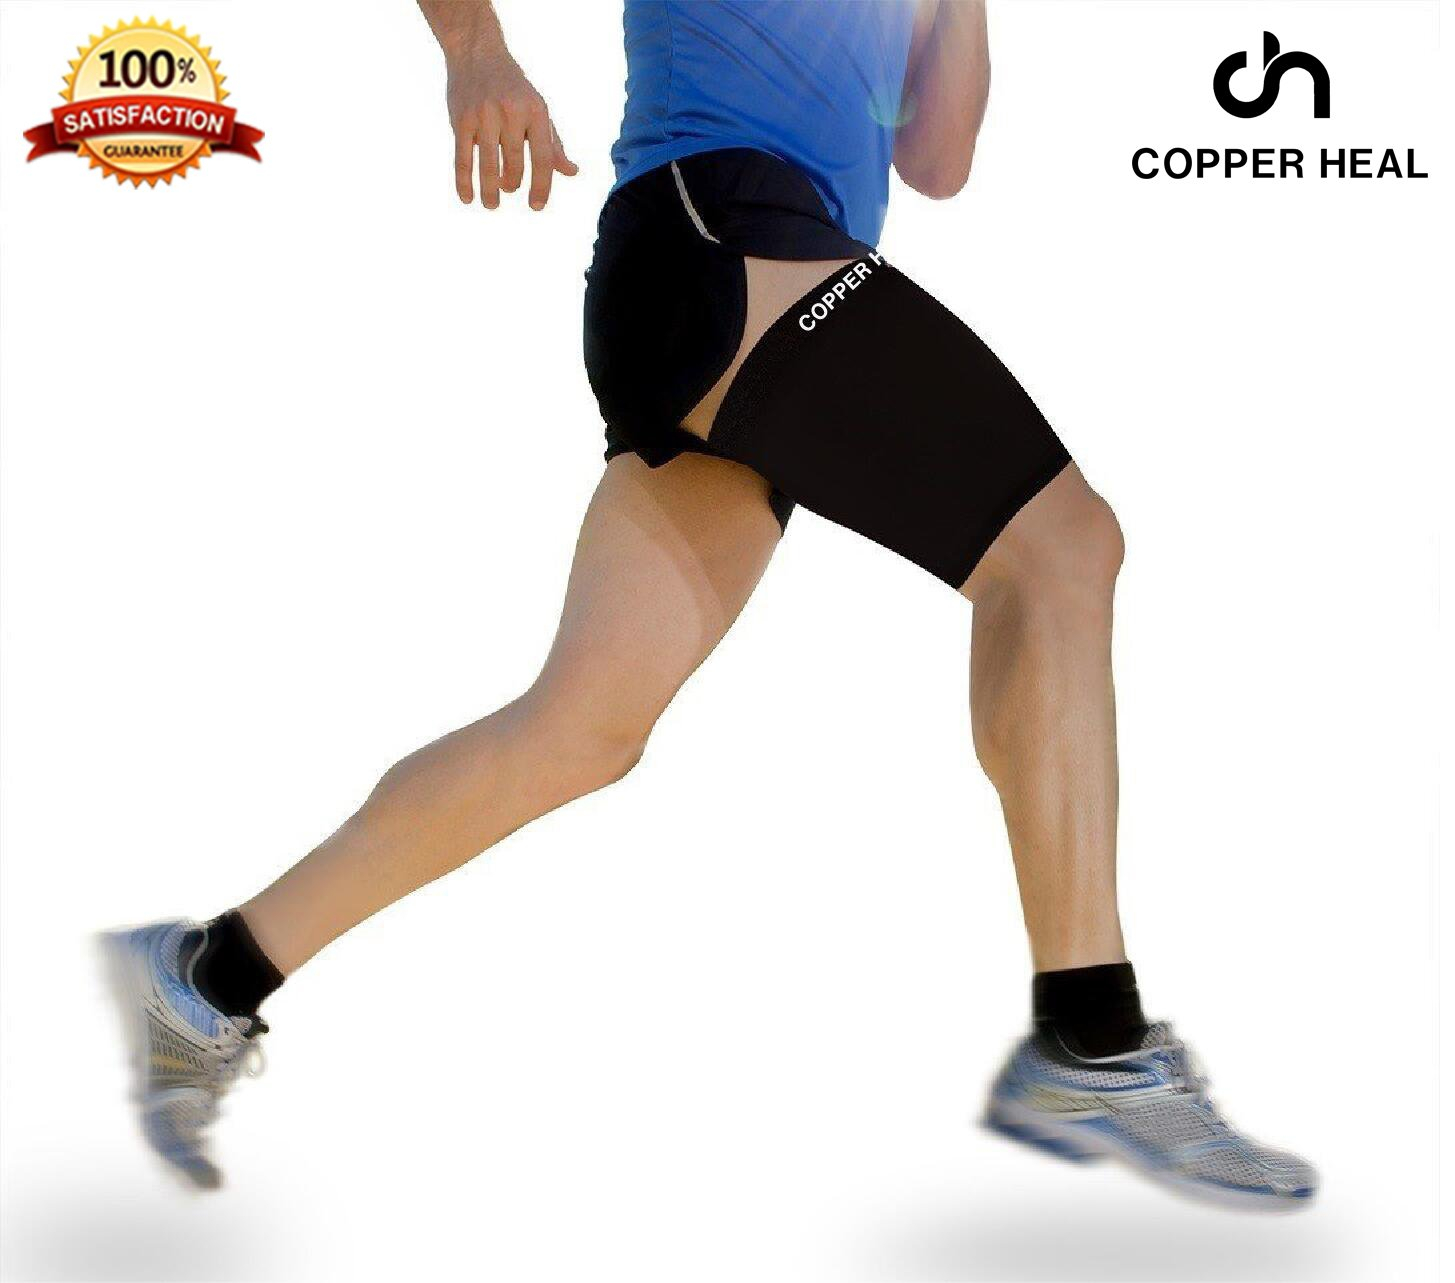 Thigh Compression Recovery Sleeve by COPPER HEAL - Recover from Sore Pulled Hamstring and Groin Strain Pain Sprains Tendinitis Injury Quadriceps Muscle Tear Quad Support Sports Workout Soccer Leg by COPPER HEAL